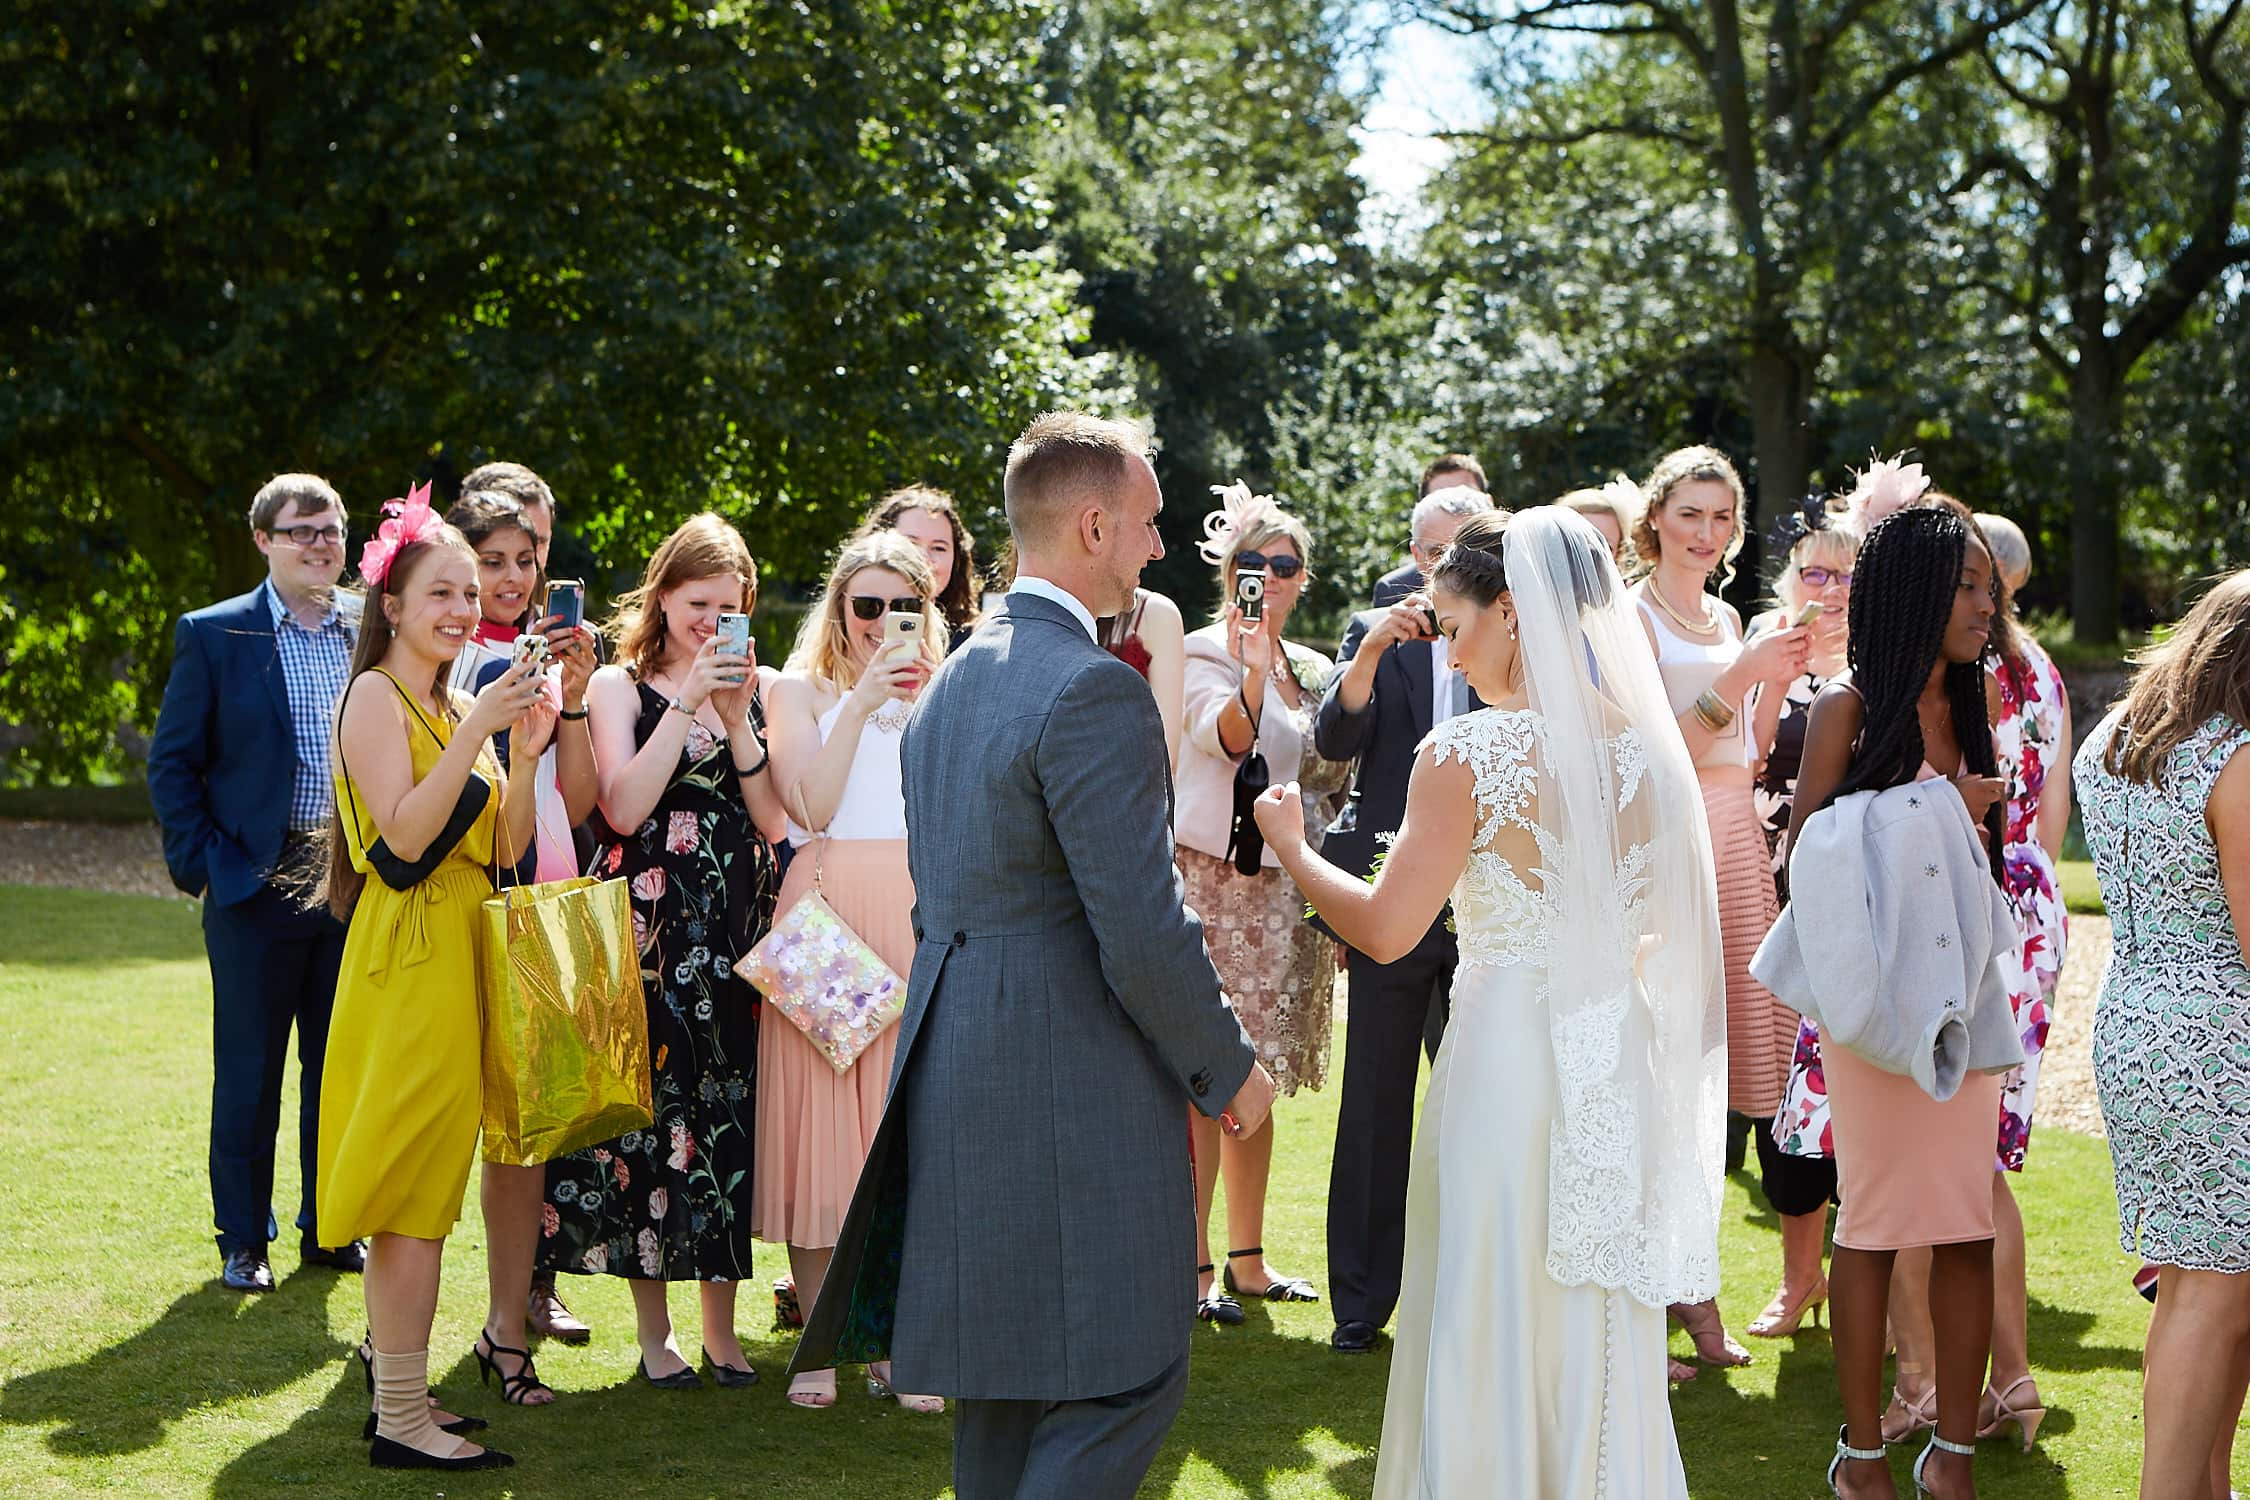 Bride and groom face friends as they photograph their wedding day on the grounds of Tattershall Castle.